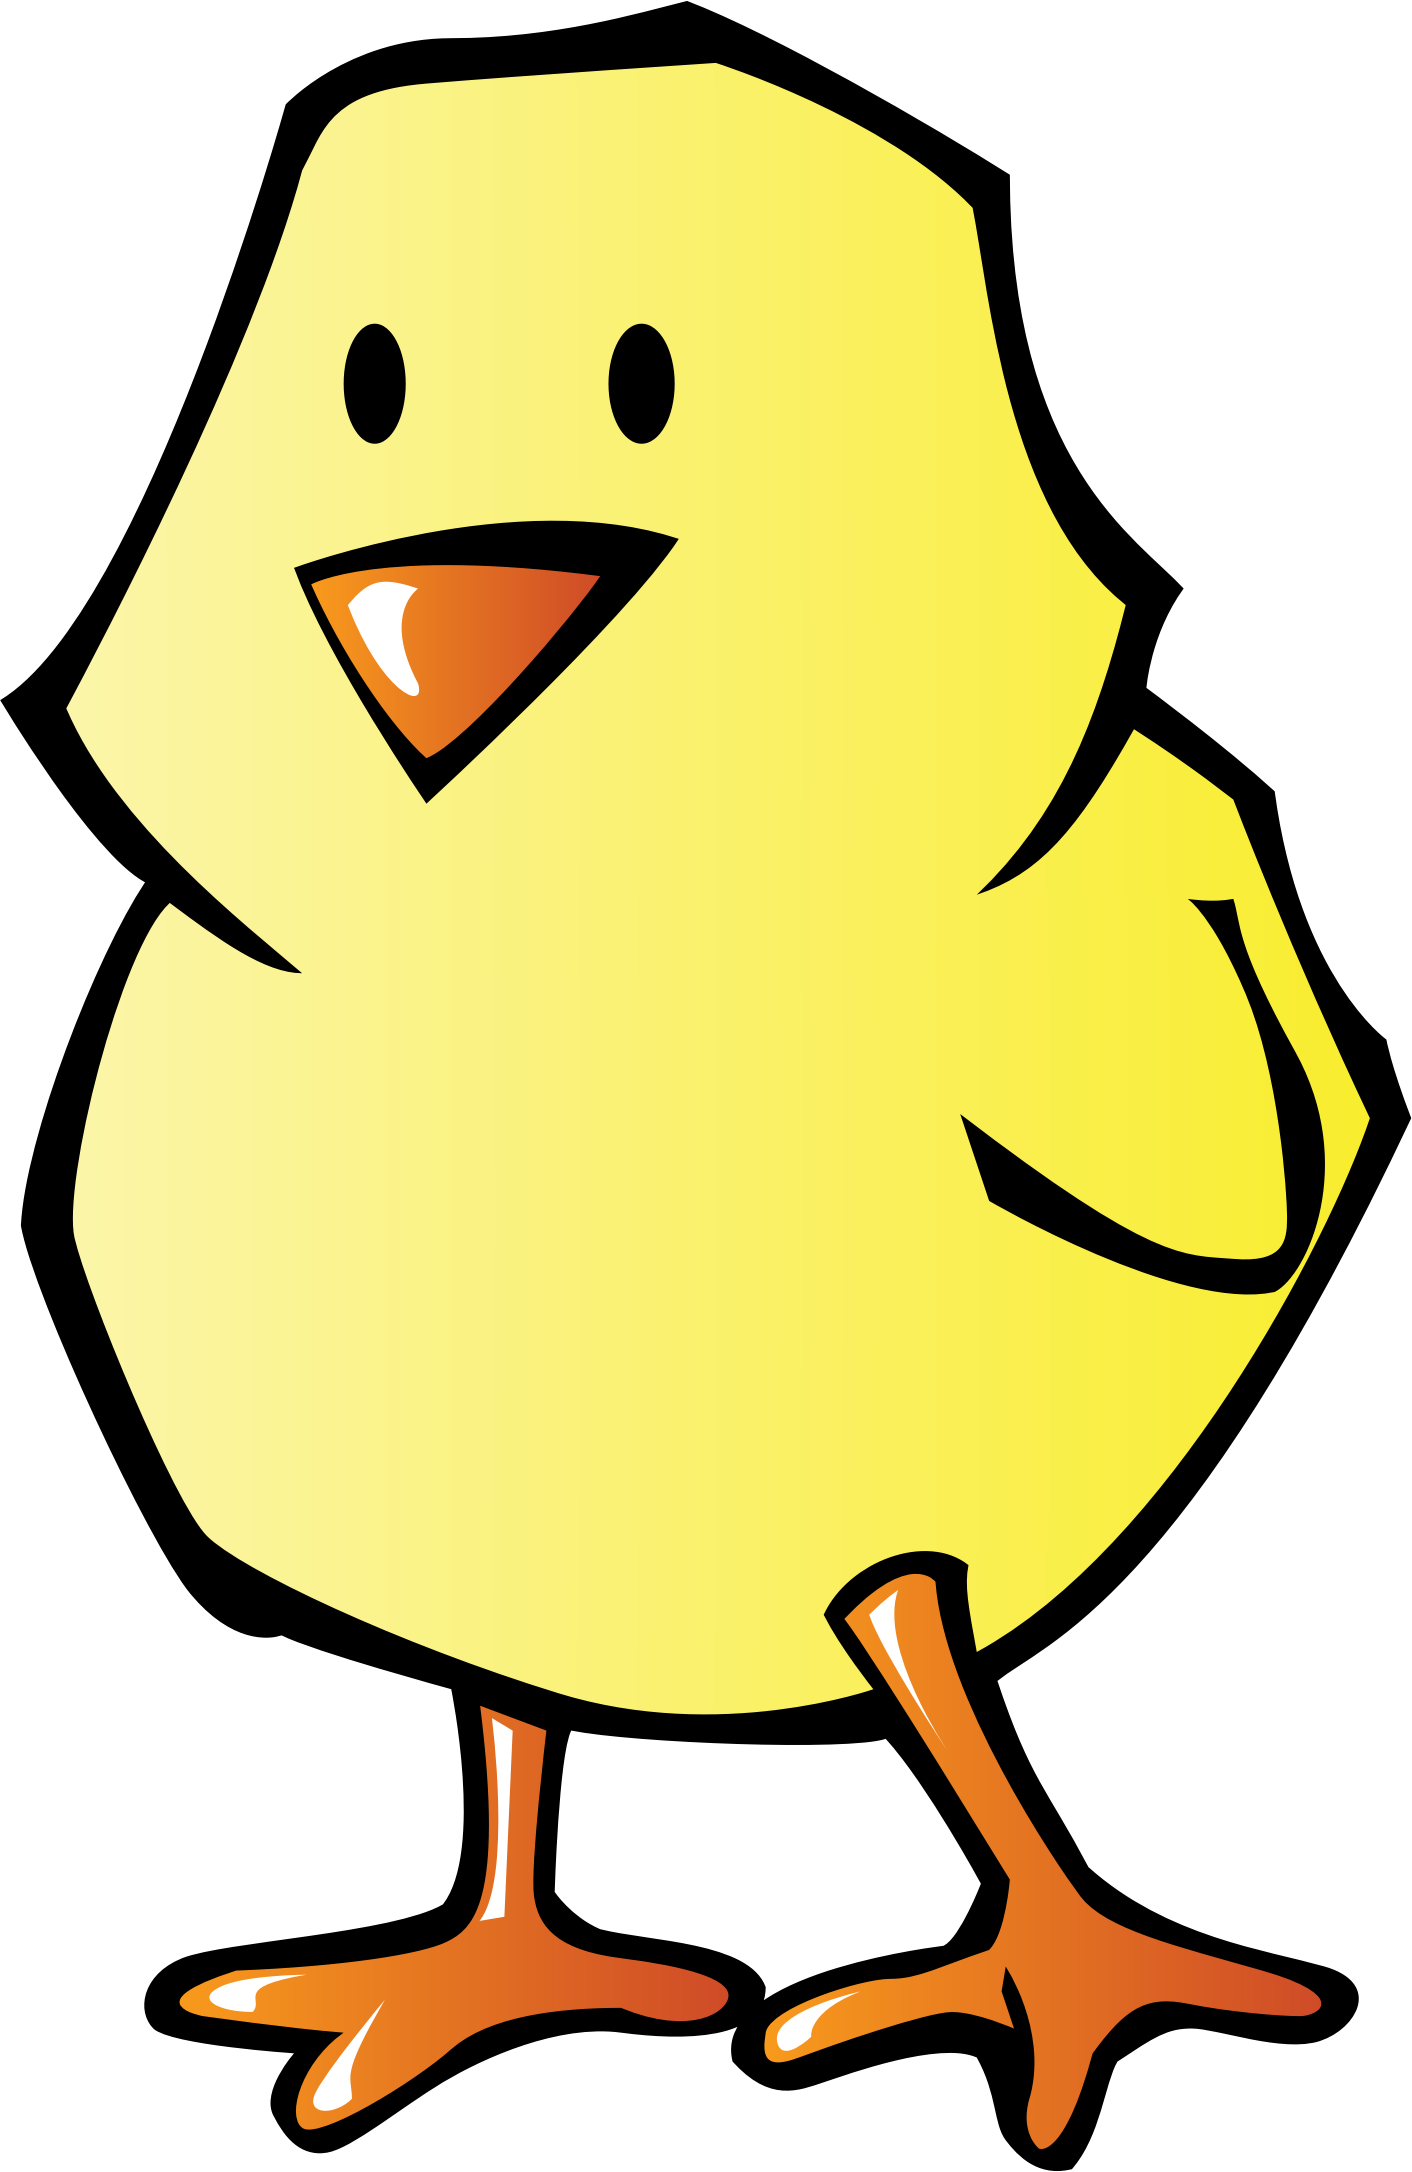 Chick big image png. Animals clipart chicken